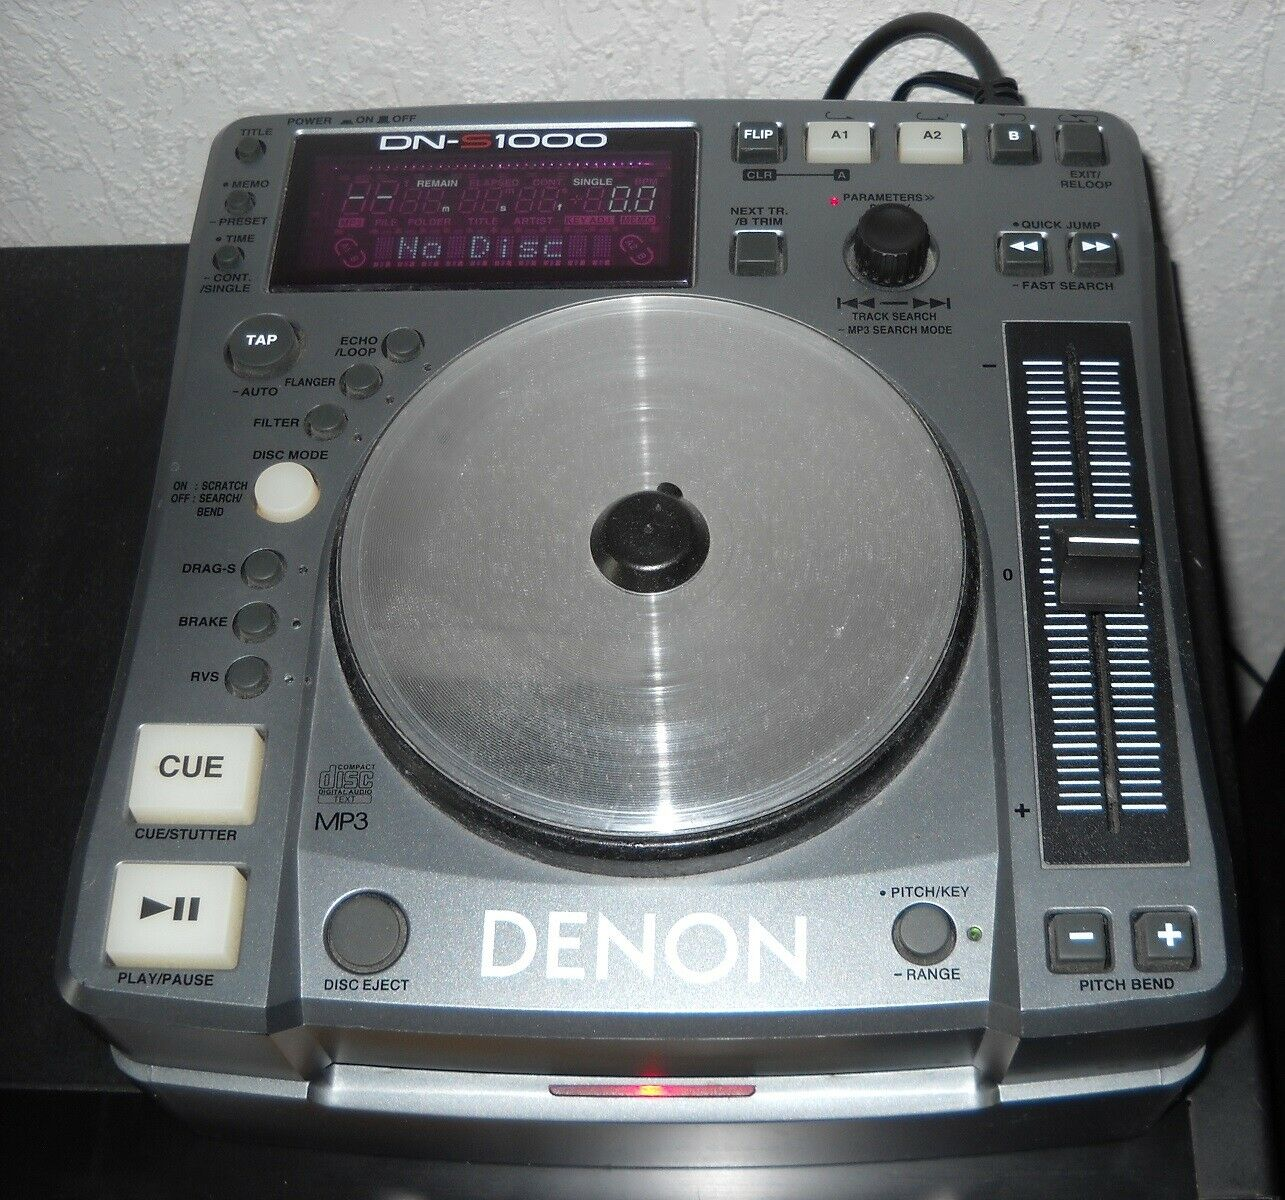 Denon DN-S1000, DJ Single CD-Player / MP3-Player - (grau/silber) - inkl. Kabel!